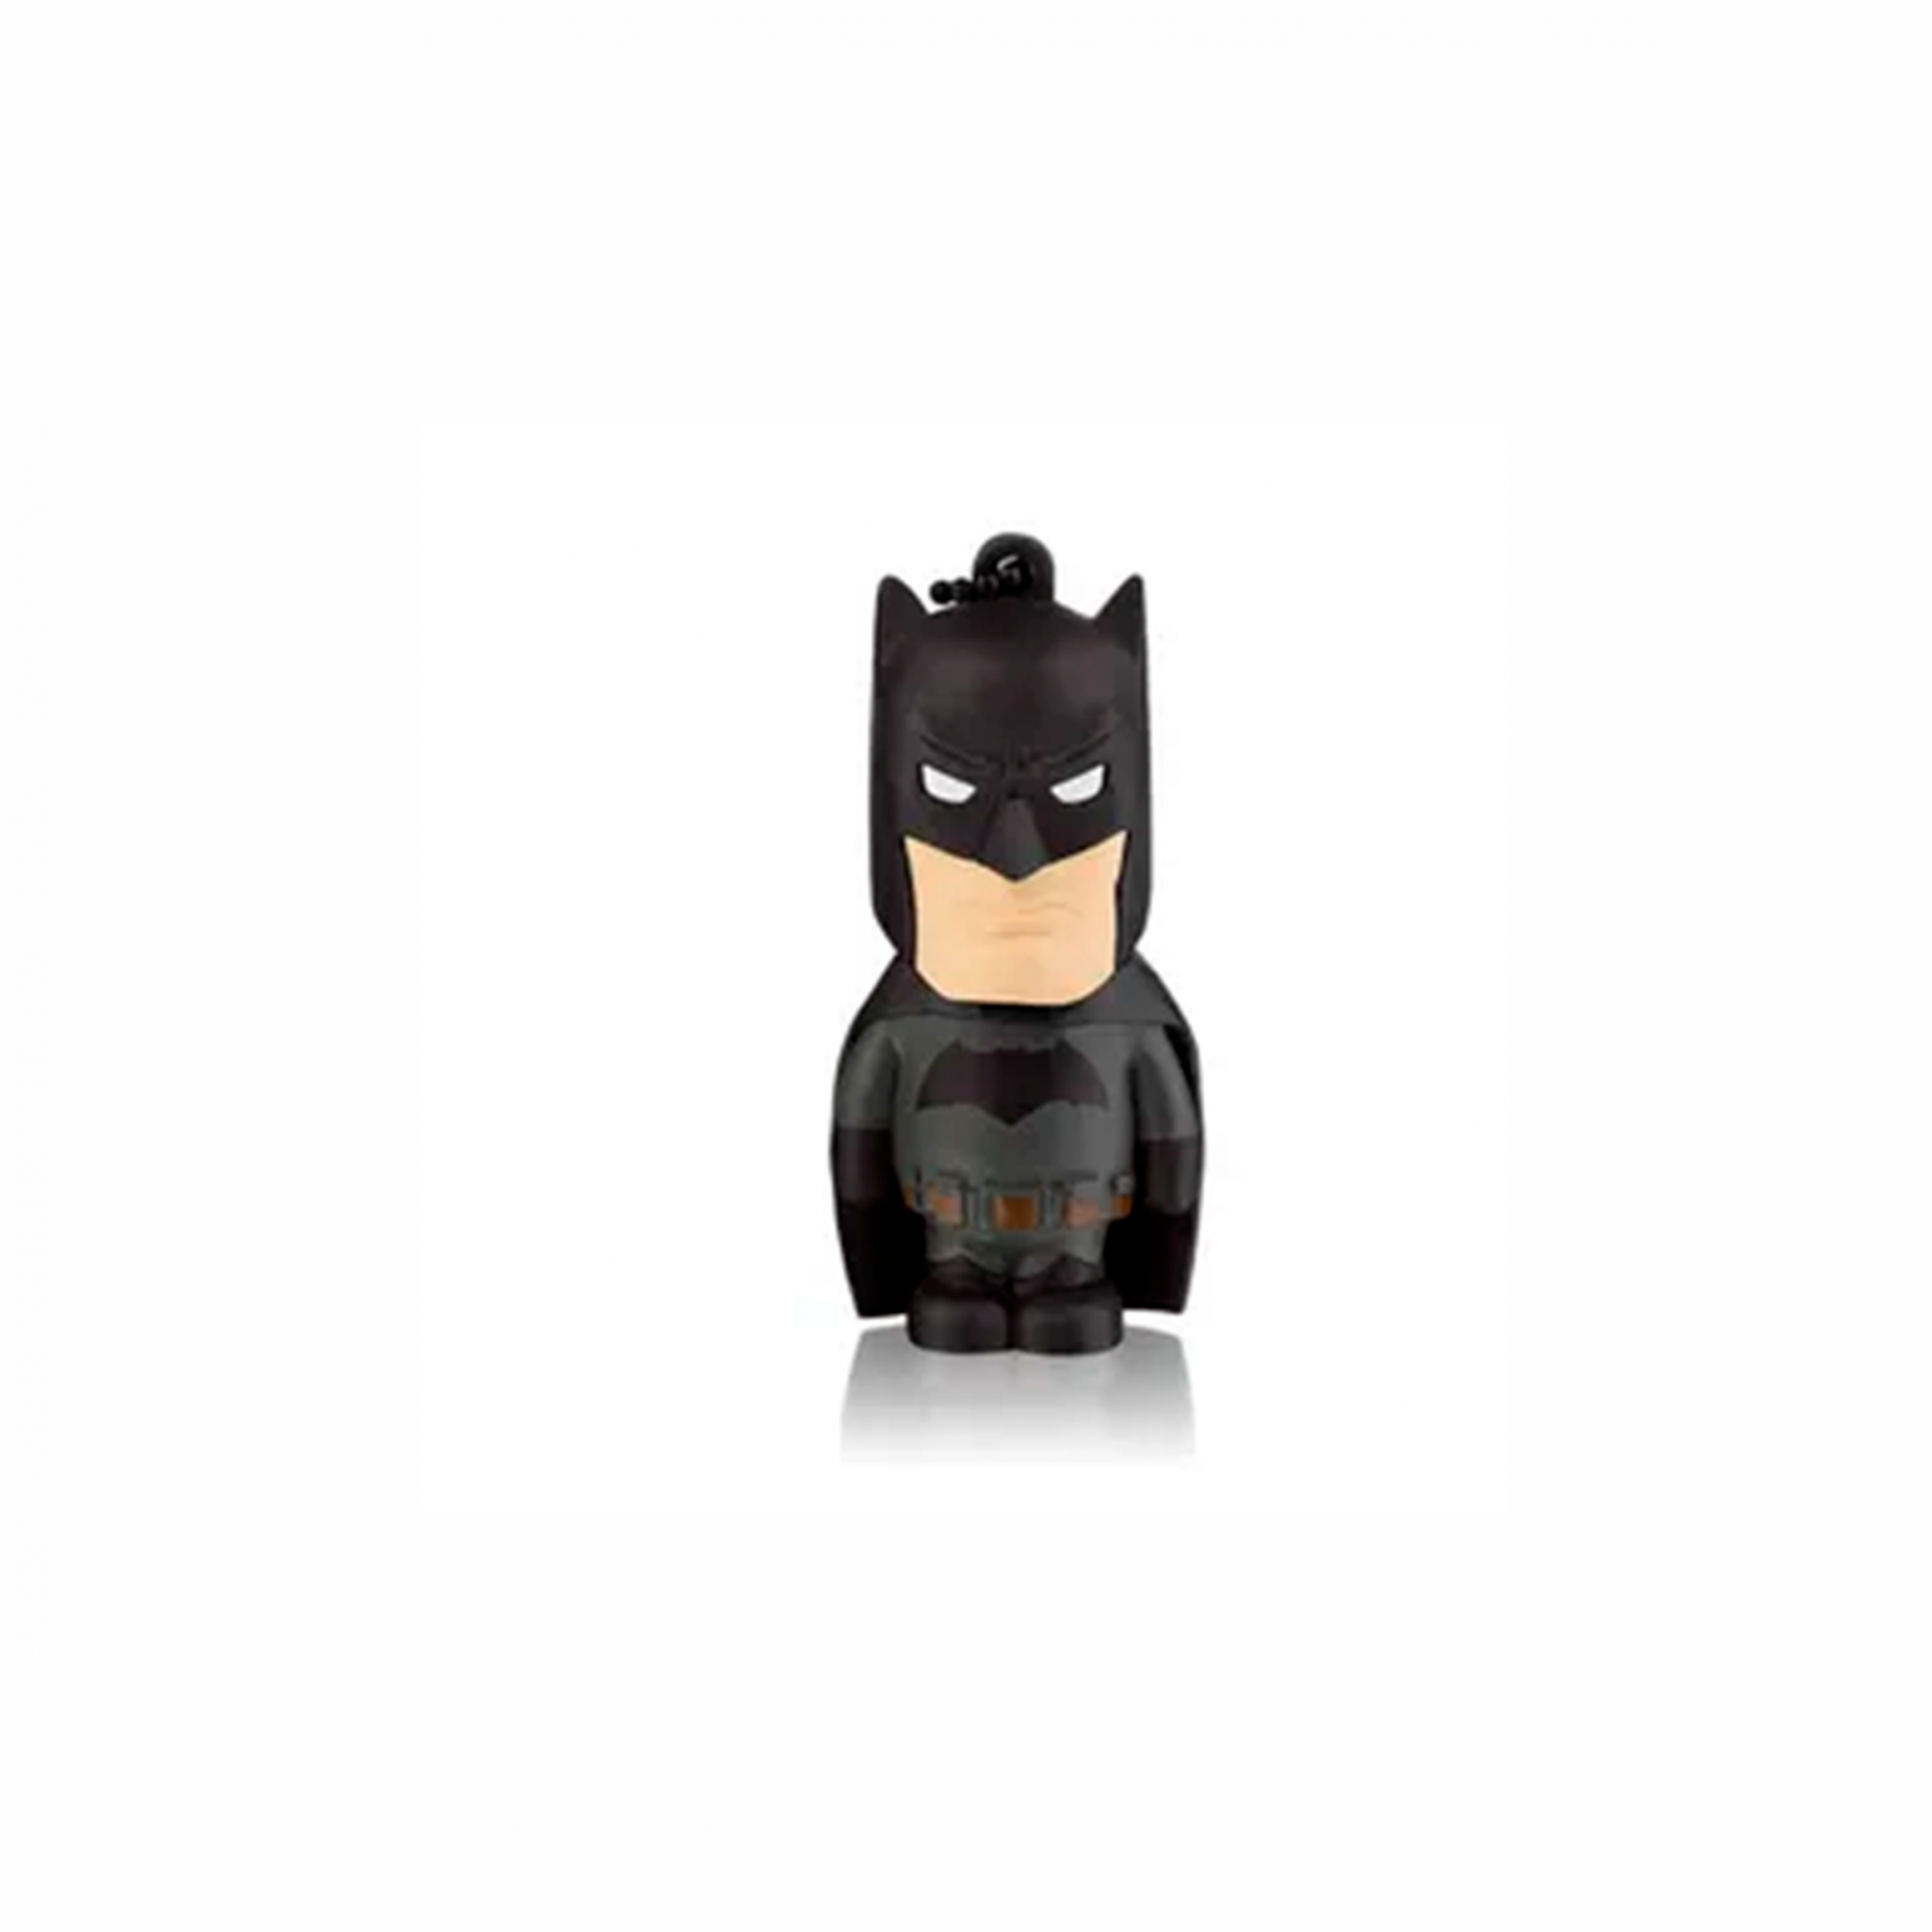 PENDRIVE BATMAN 8GB PD085 MULTILASER